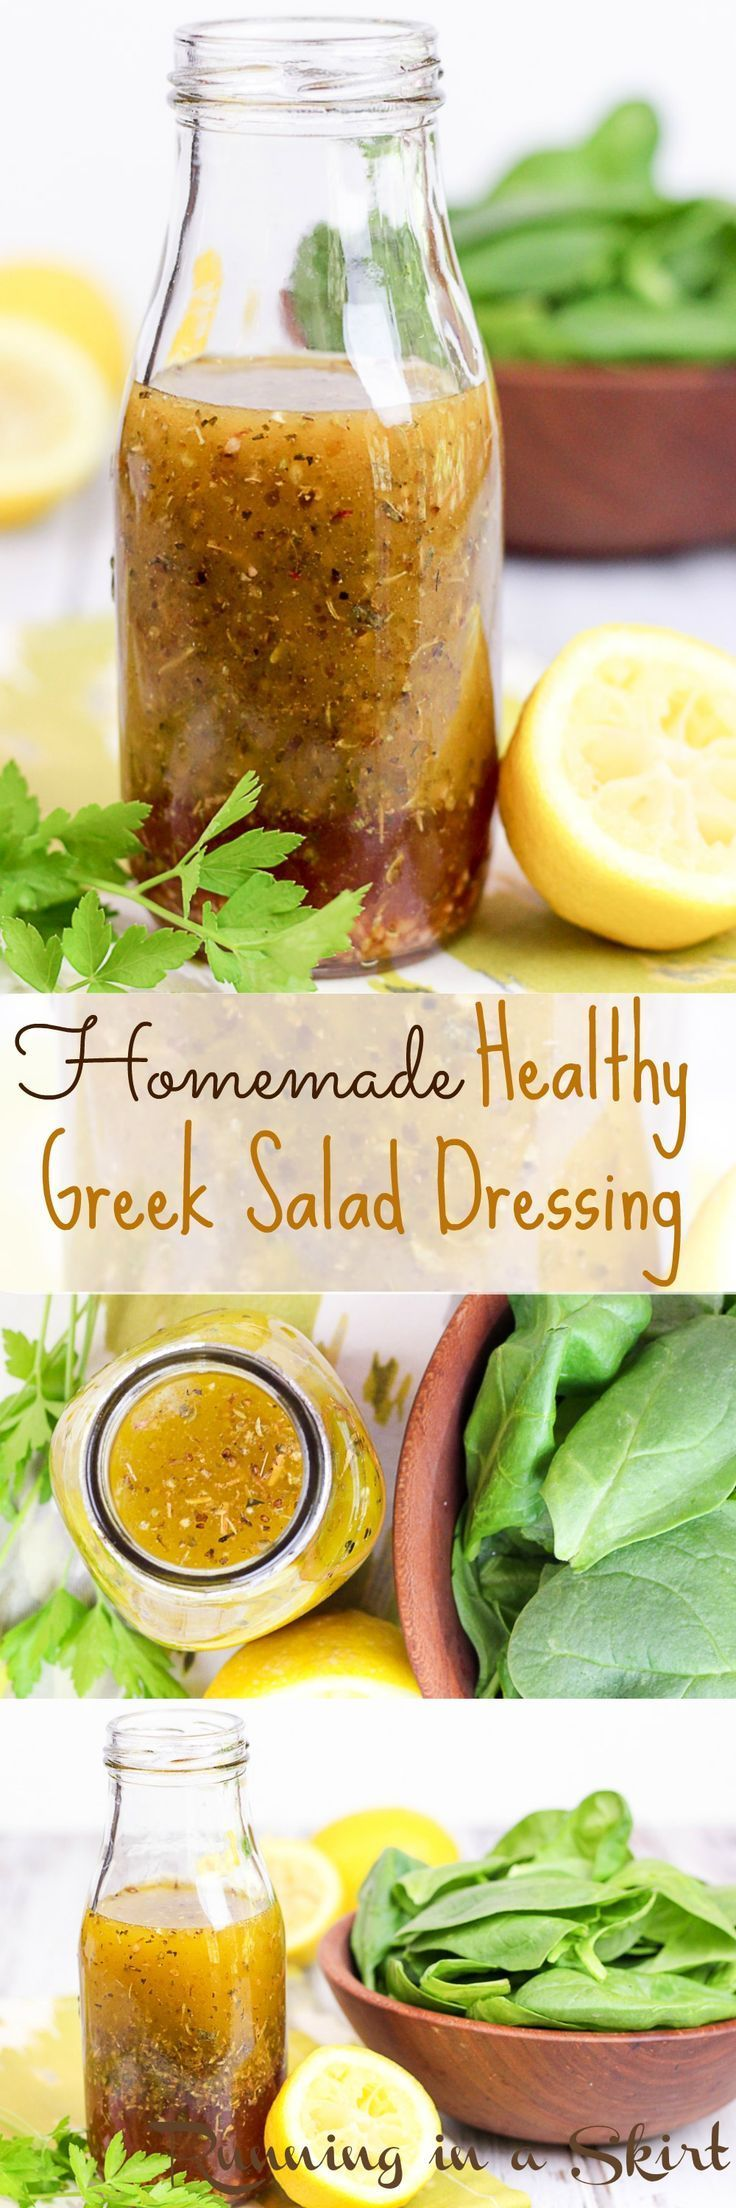 Homemade Healthy Greek Salad Dressing recipes. DIY with only 7 ingredients!! Clean eating with olive oils, red wines vinegar, lemon and herbs. This reicpe is easy, vegan, dairy-free, skinny and simple. Great how to make instructions. Perfect on any salad. / Running in a Skirt